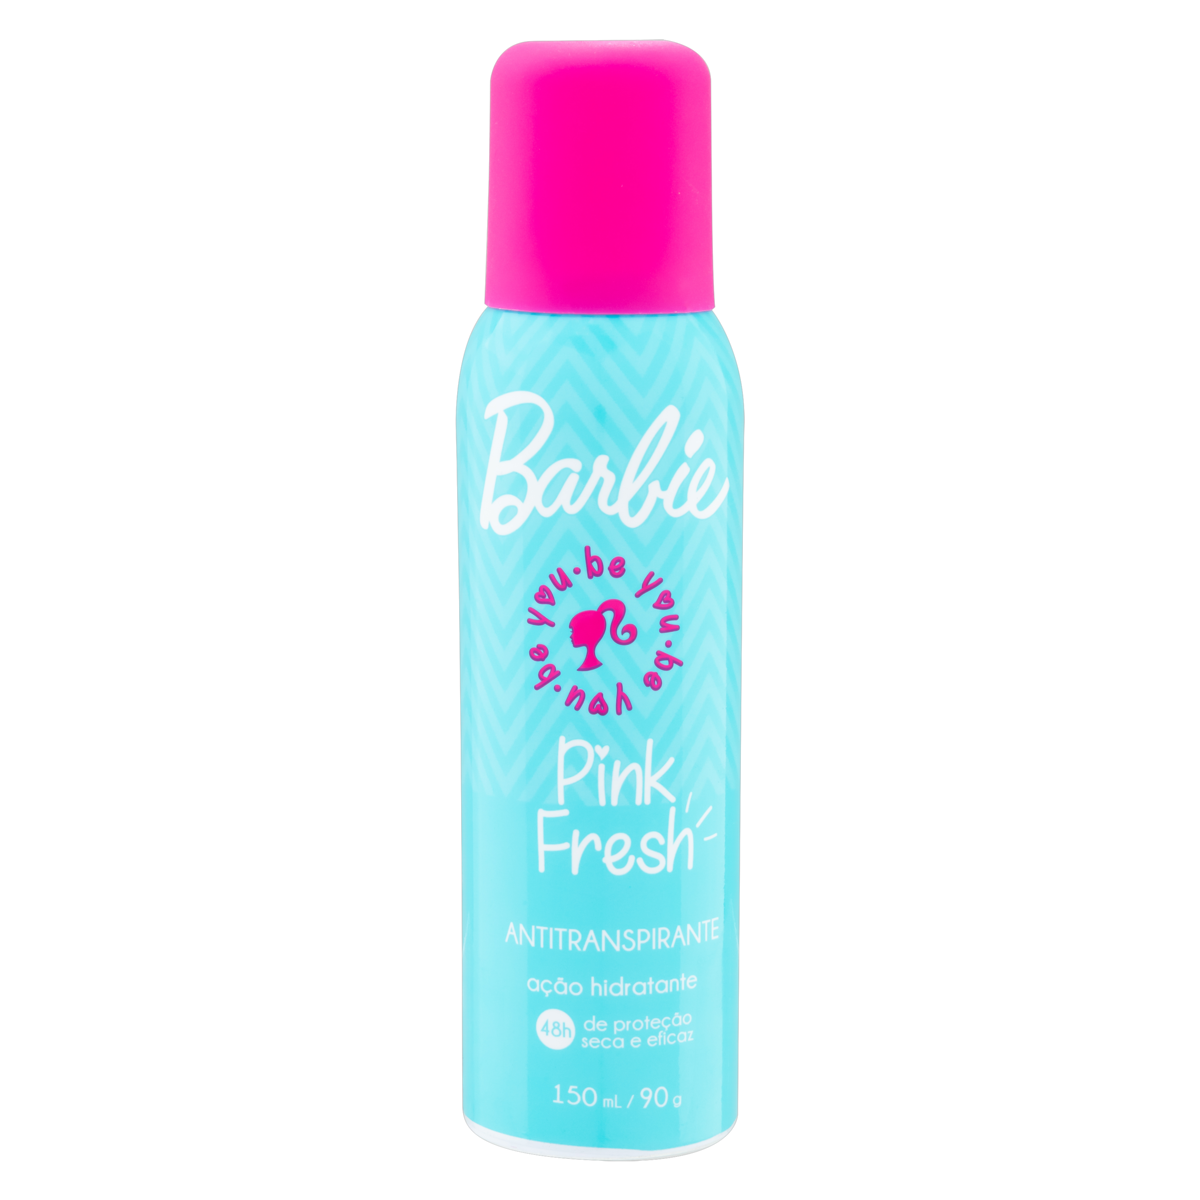 7899304809081 - ANTITRANSPIRANTE AEROSSOL PINK FRESH BARBIE NUTRIEX MARCAS TEENS 150ML